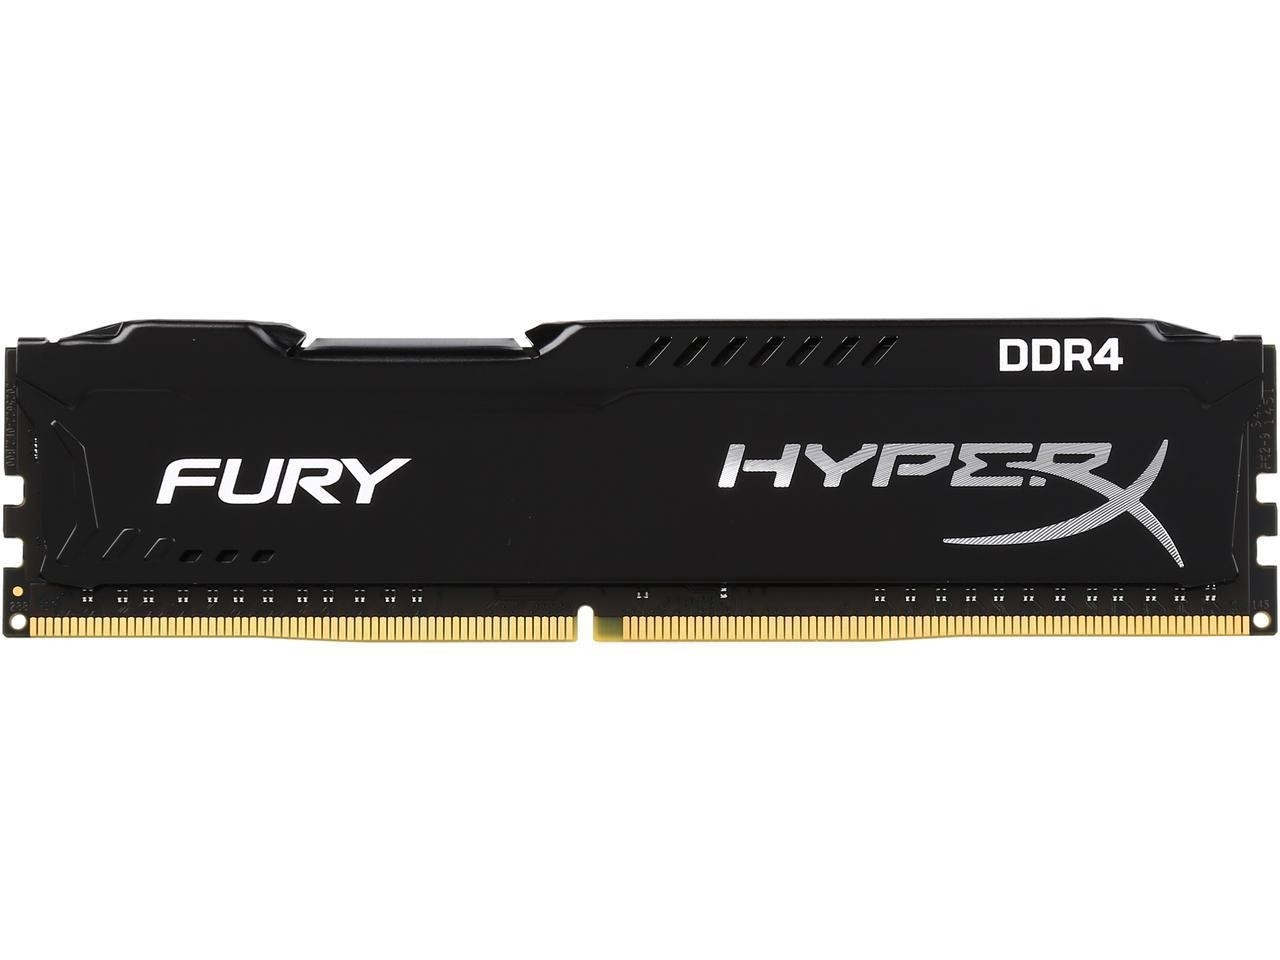 Kingston HyperX Fury 8GB DDR4-3200 DIMM PC4-25600 CL16, 1.2V